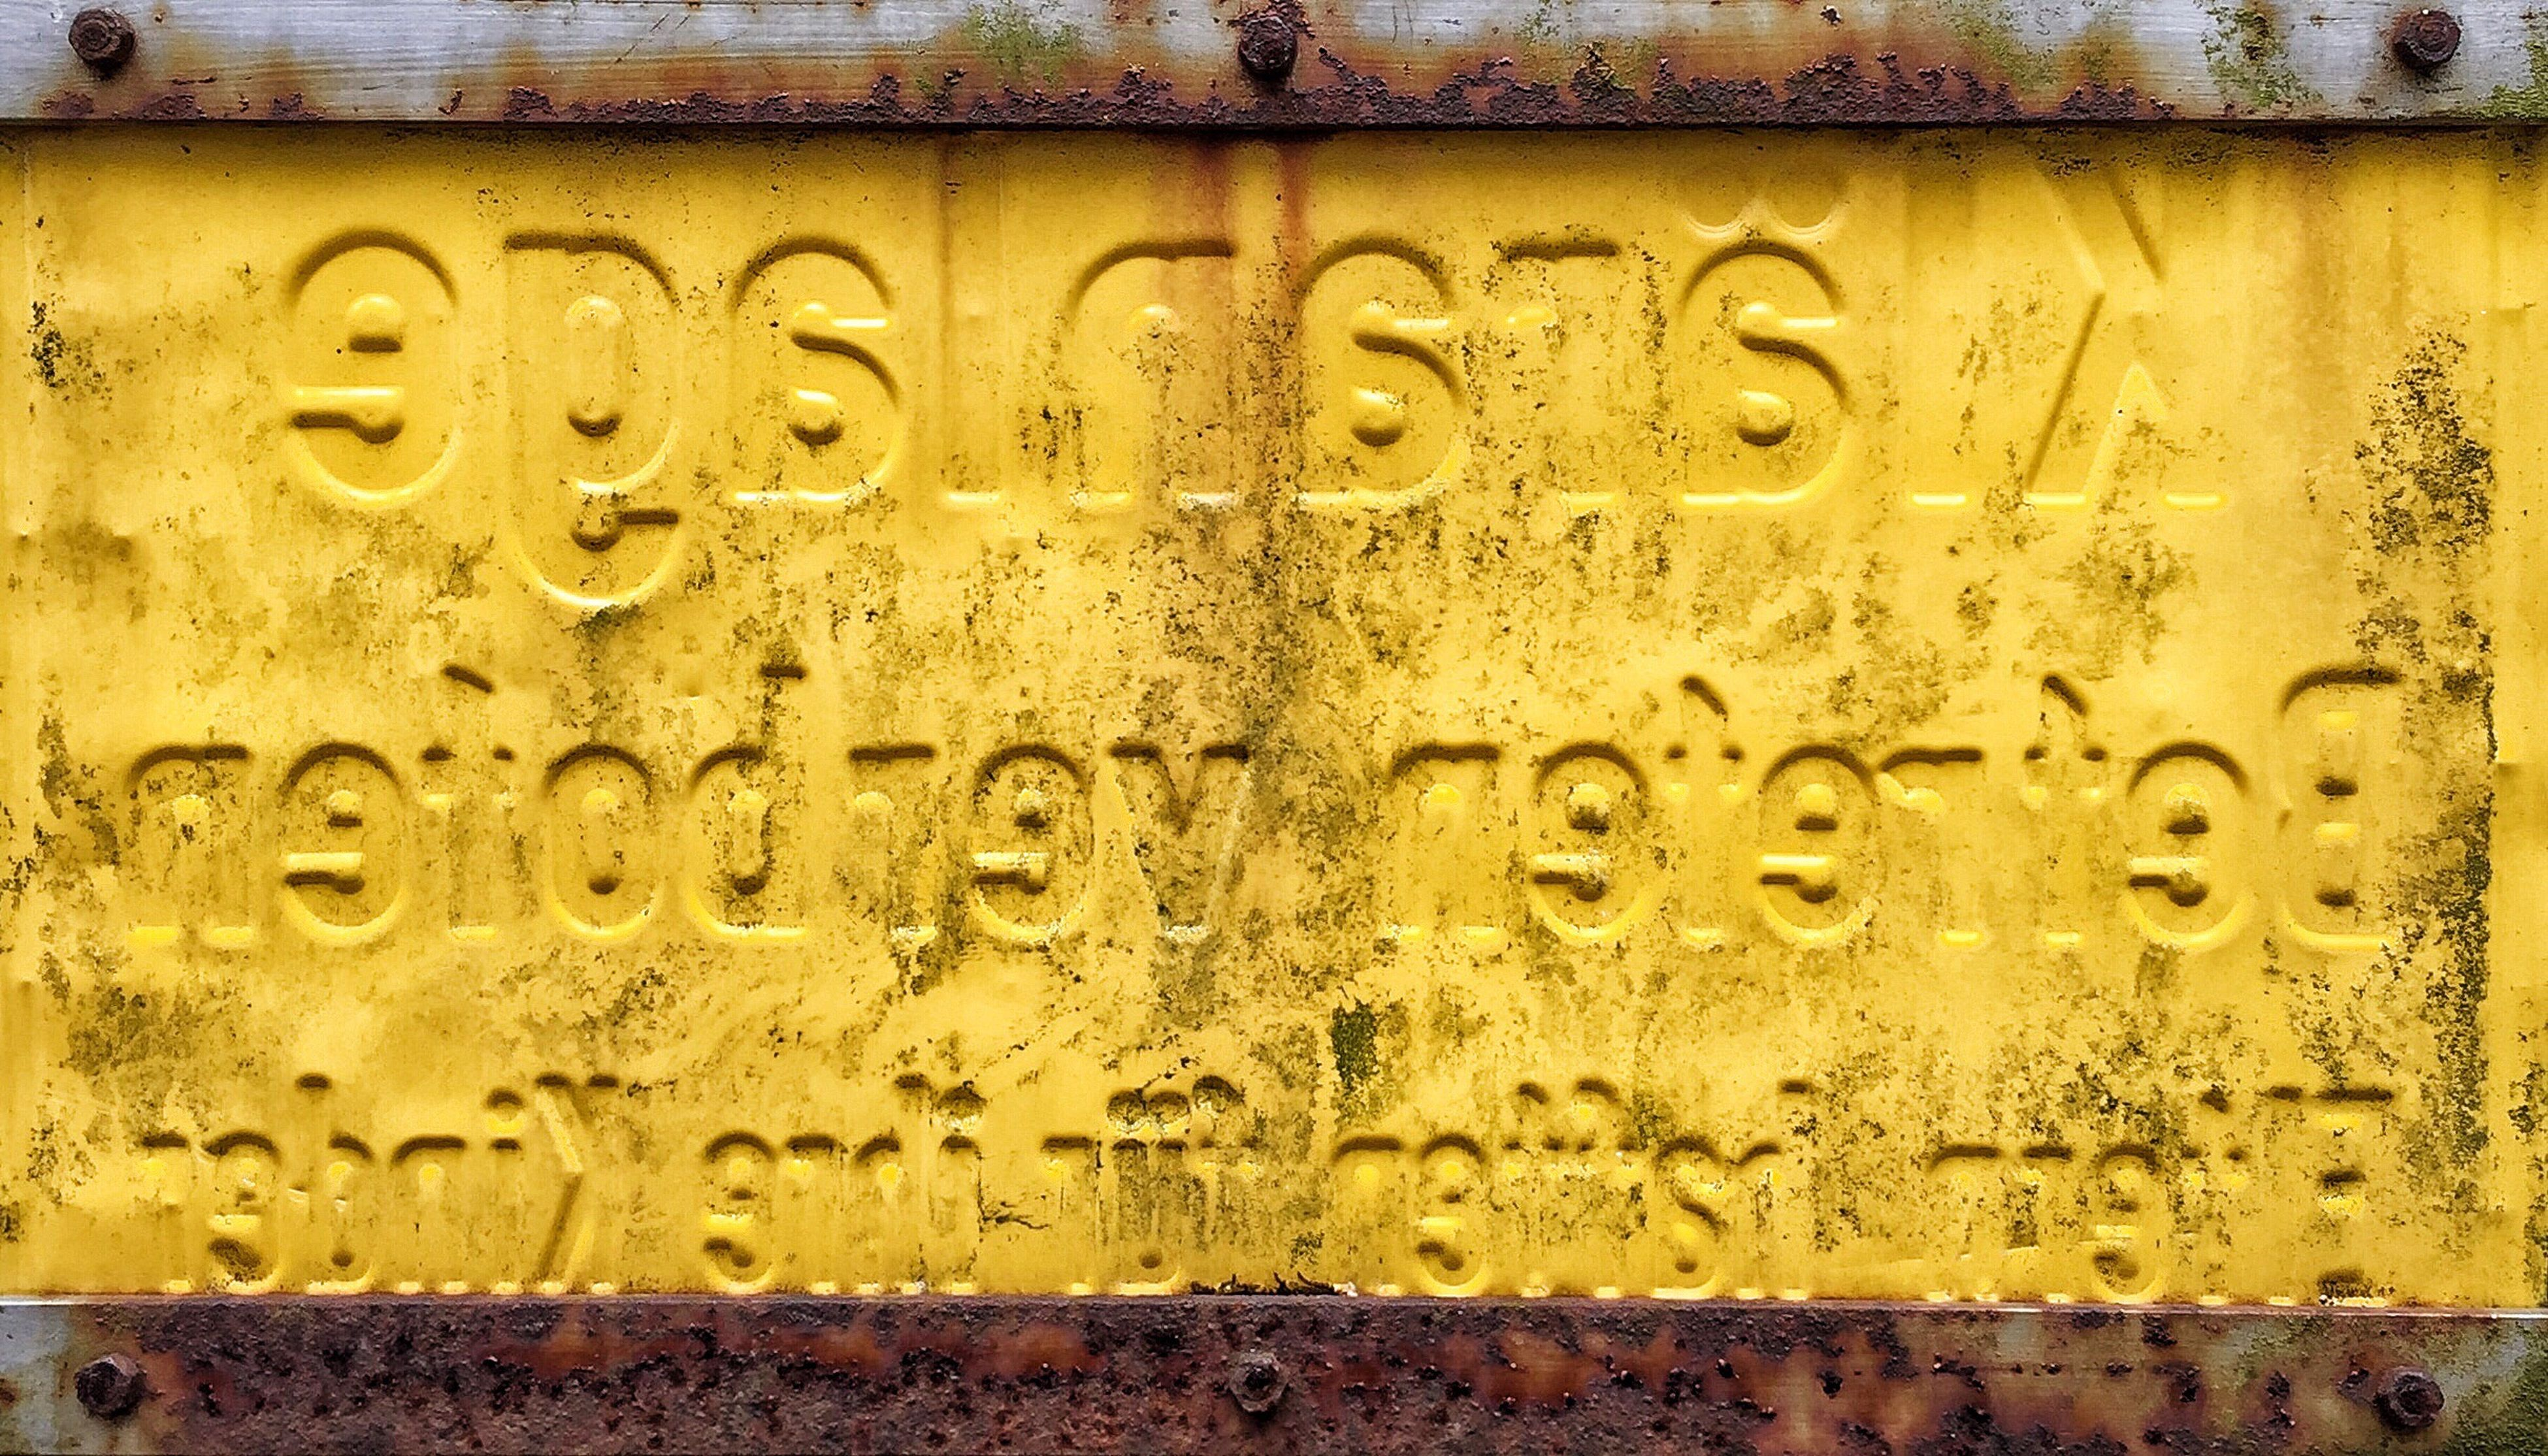 metal, yellow, no people, textured, backgrounds, close-up, communication, drop, outdoors, day